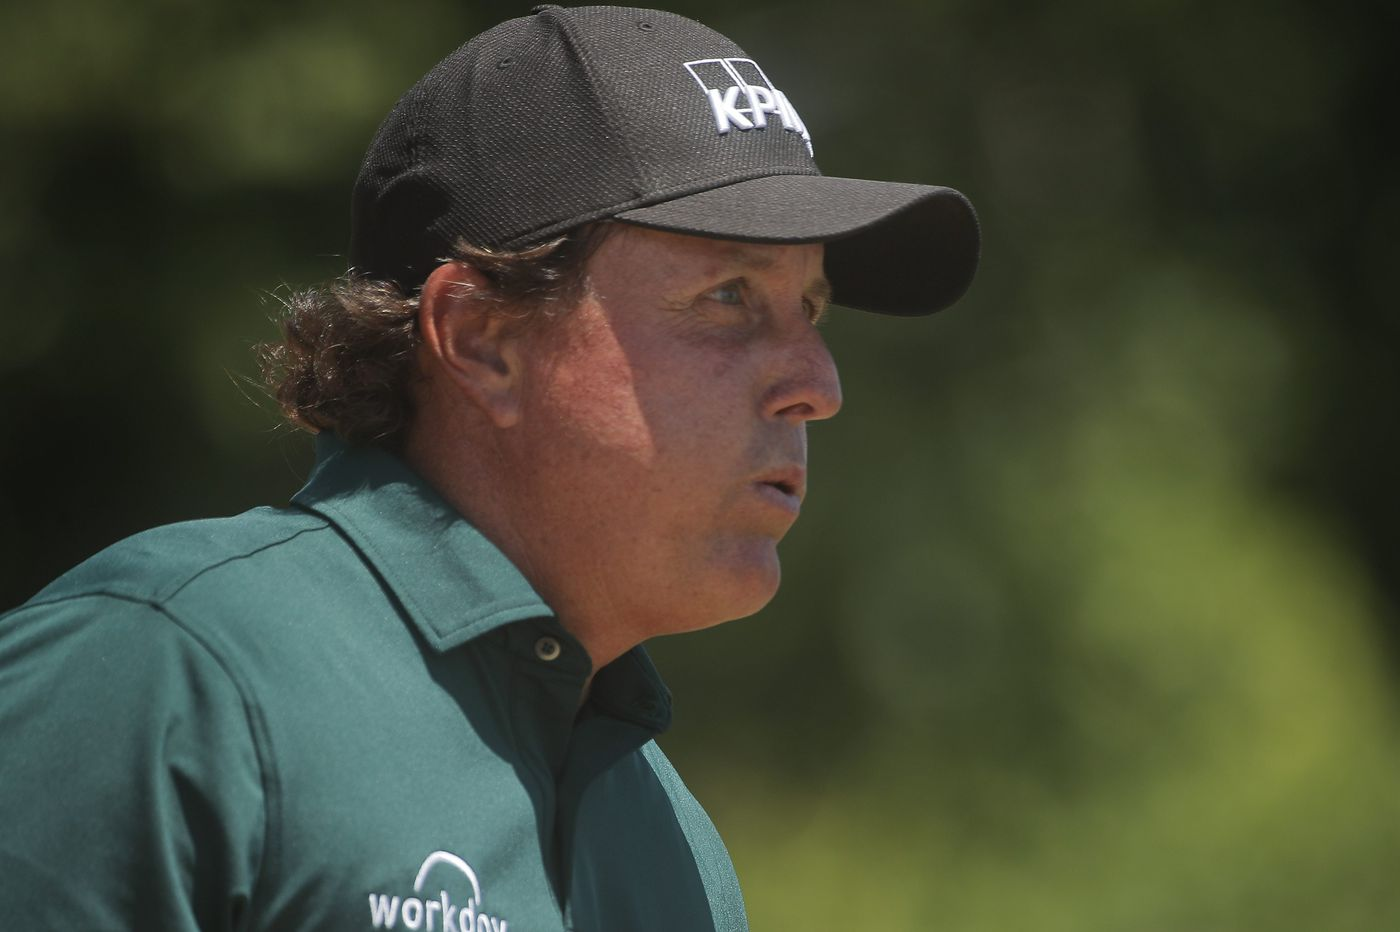 Phil Mickelson flirts with U.S. Open disqualification by hitting moving golf ball